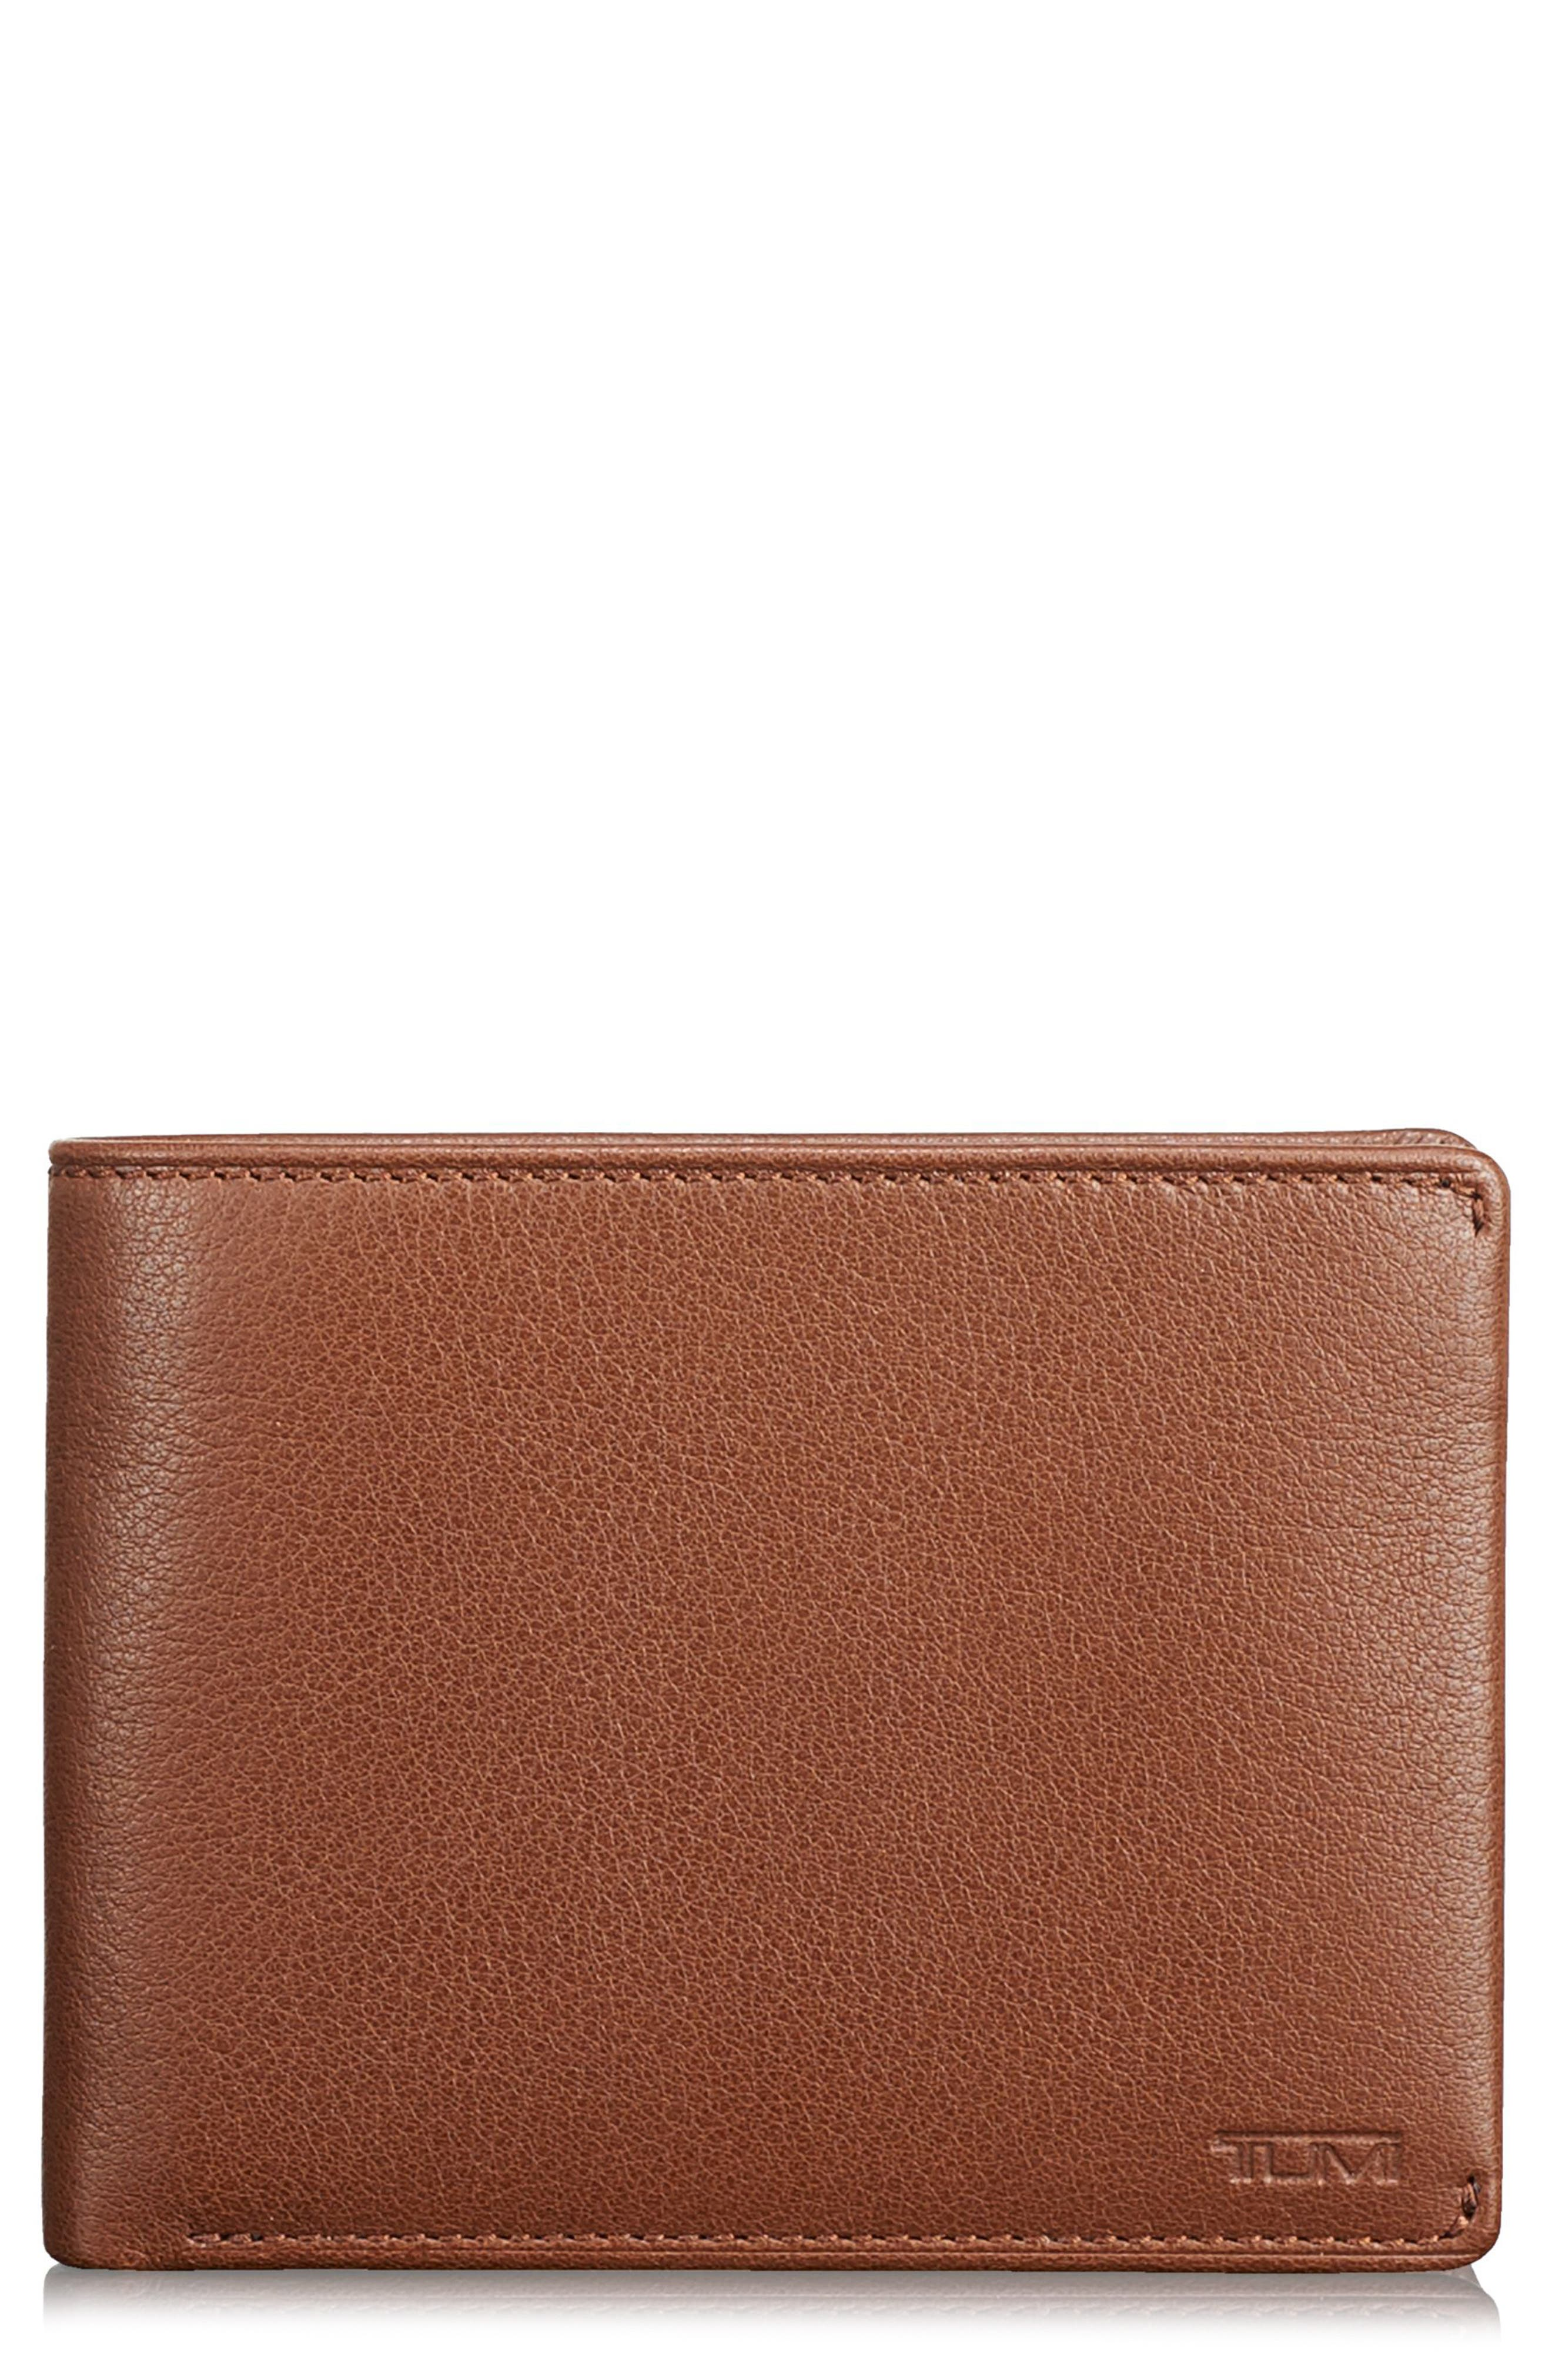 TUMI Global Leather RFID Wallet